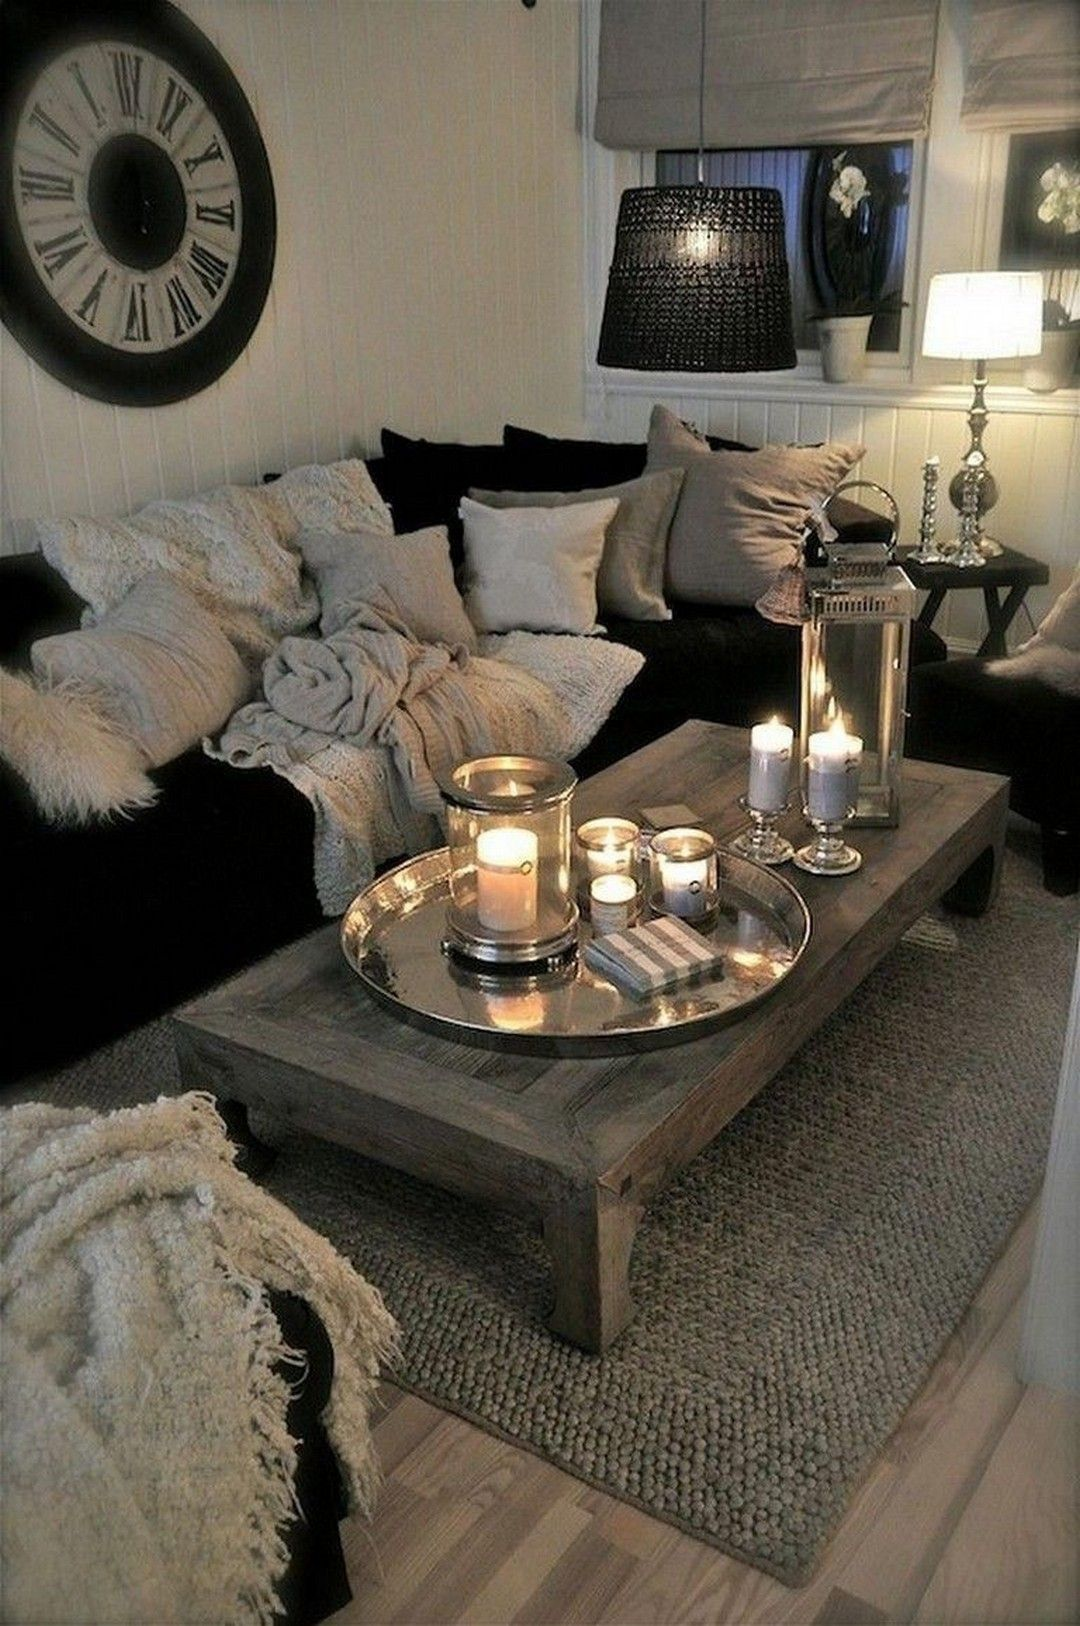 23 Totally Smart Diy College Apartment Decoration Ideas On A